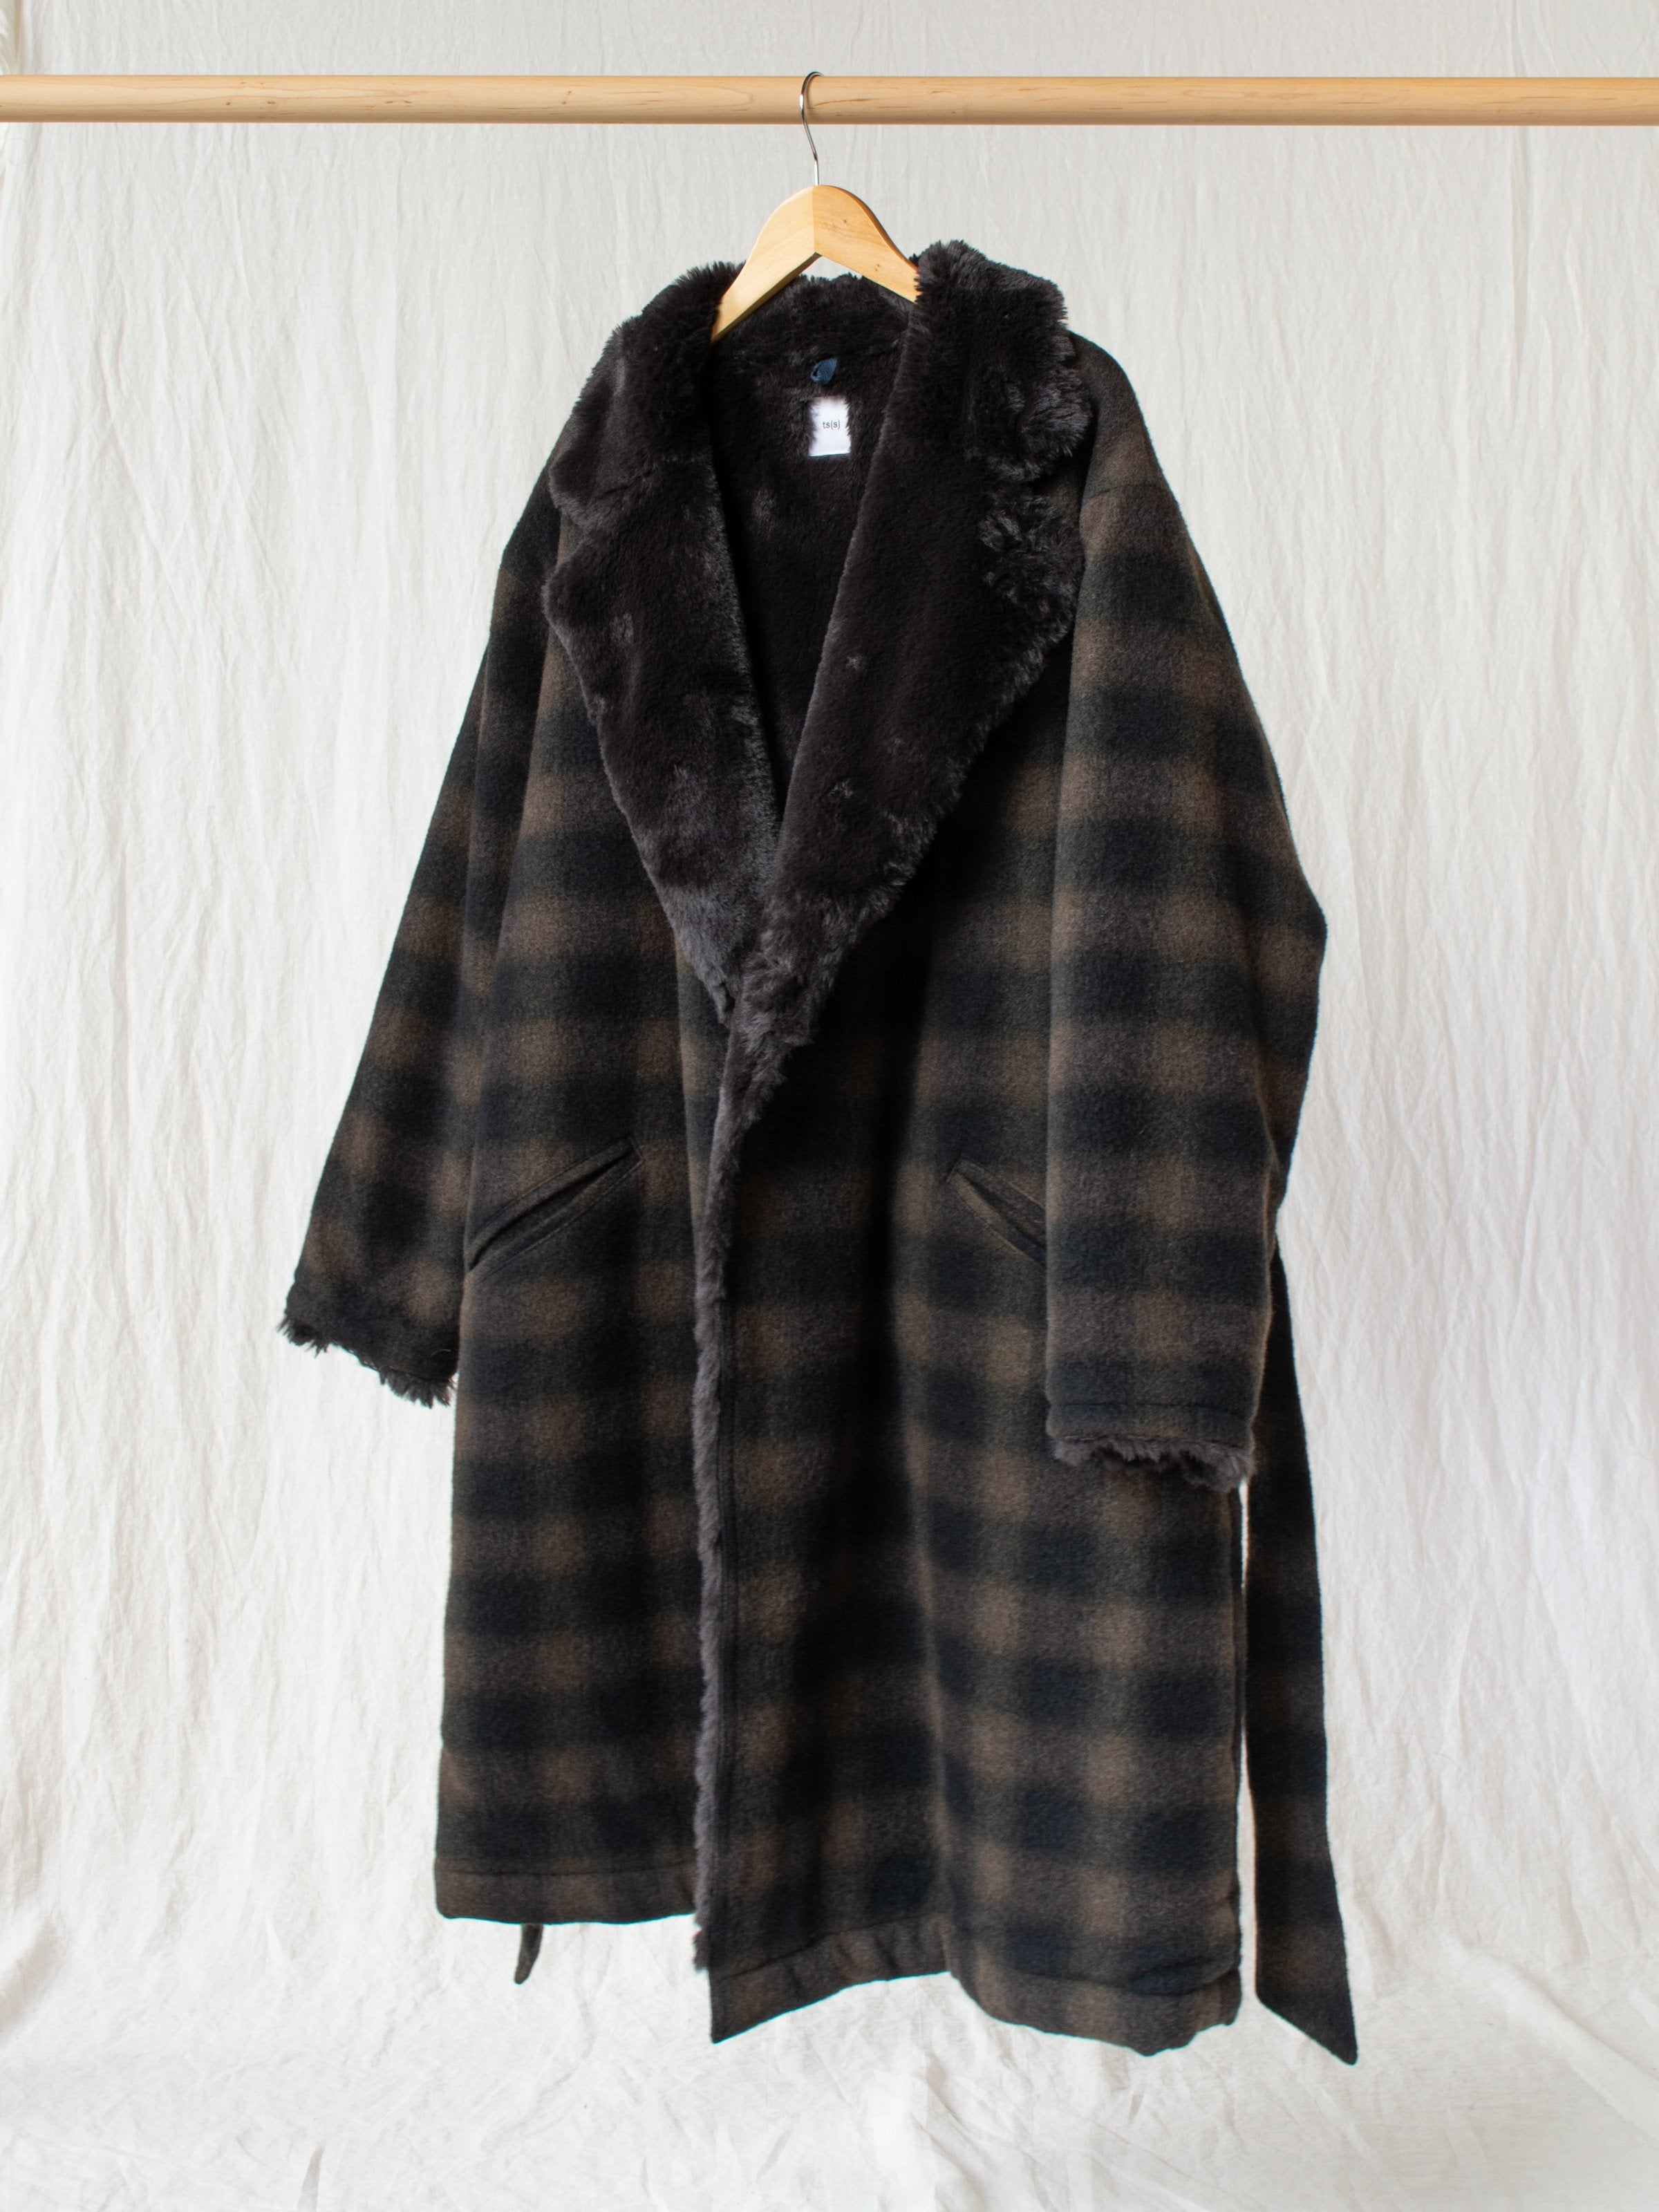 Boa Lined Belted Coat - Ombre Plaid Wool